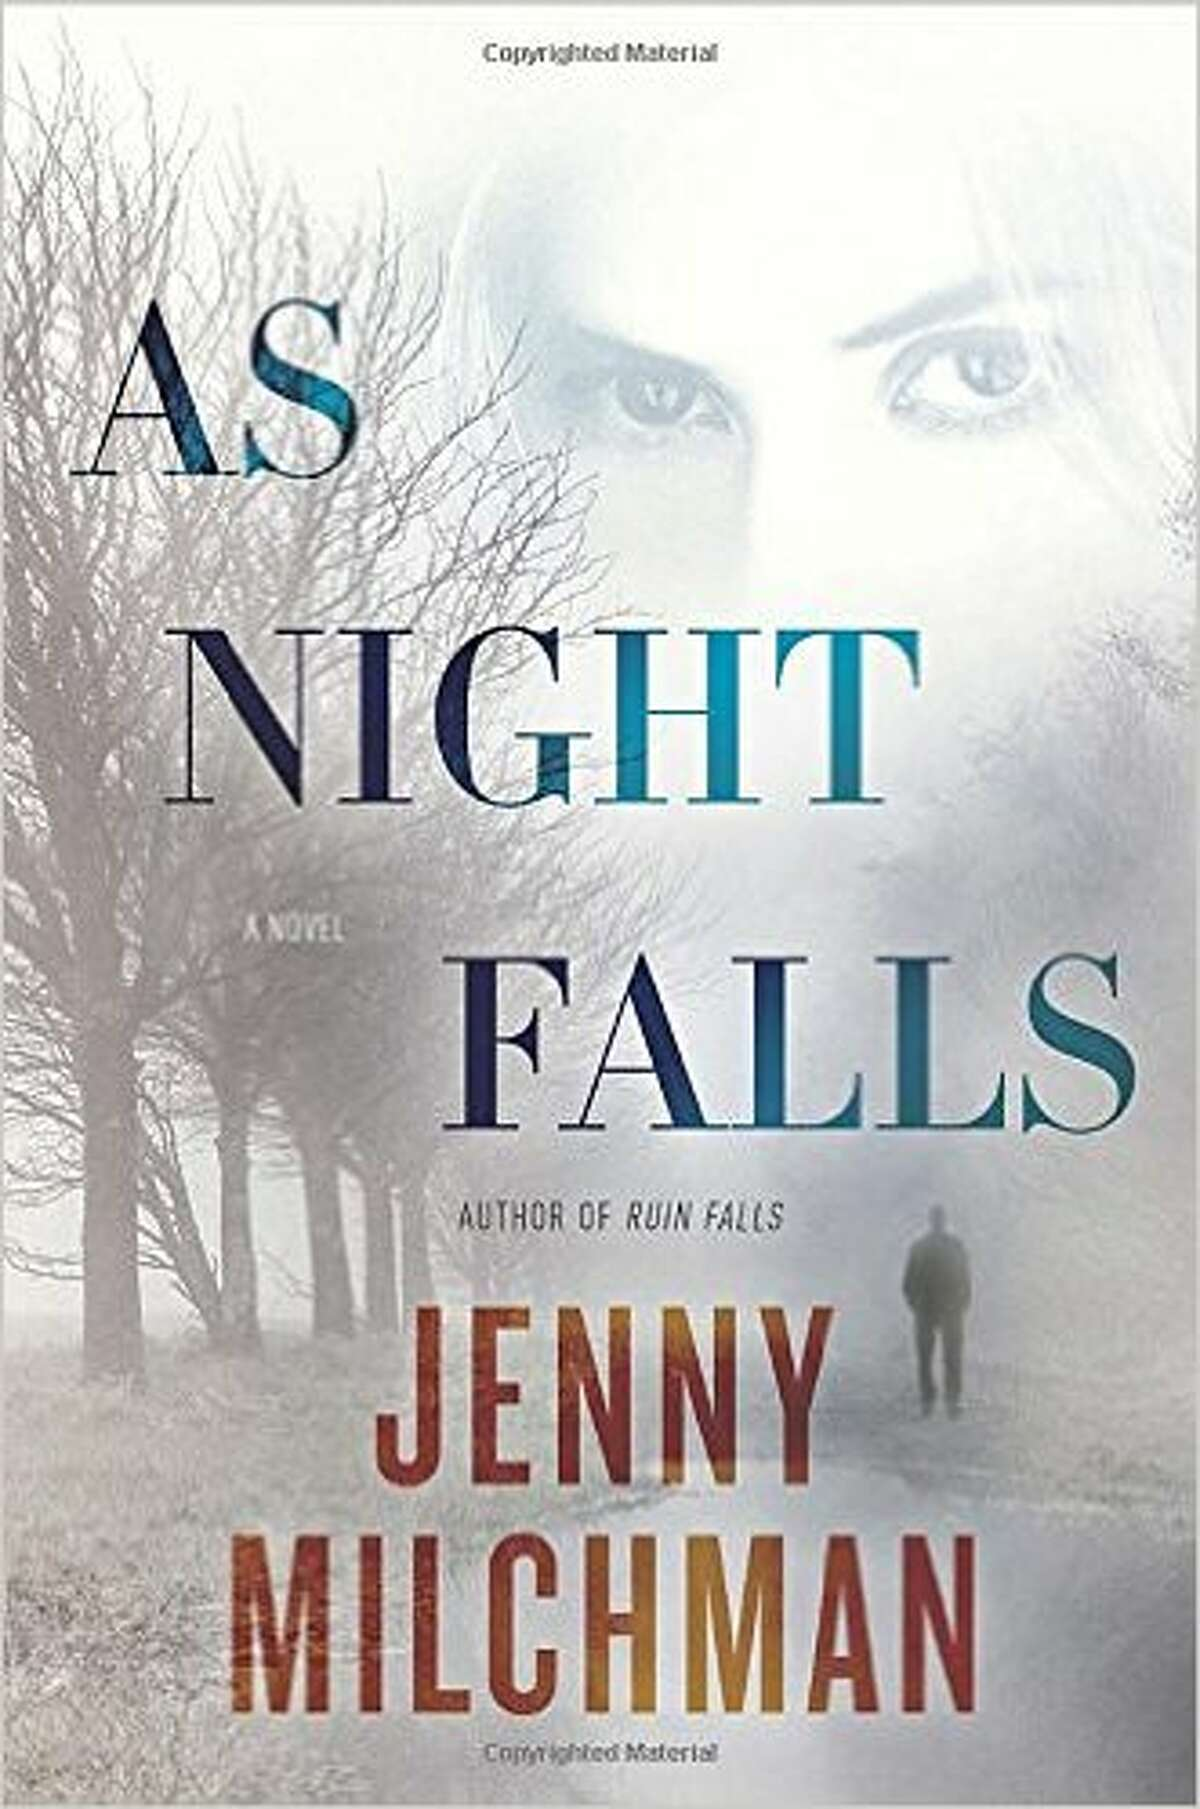 """""""As Night Falls,"""" by Jenny Milchman. (Ballantine Books, 2015). This thriller about a long-lost brother could scarcely be better timed: It is about a brother, long imprisoned, who together with a partner makes a daring prison escape into the Adirondacks, and reappears in his sister's life to threaten everything she holds dear. Milchman is also the author of """"Ruin Falls"""" (2014). Her debut novel, """"Cover of Snow"""" (2013), won the Mystery Writers of America's Mary Higgins Clark Award. She lives near Woodstock and has set all of her novels so far in the Adirondacks and other parts of upstate New York."""